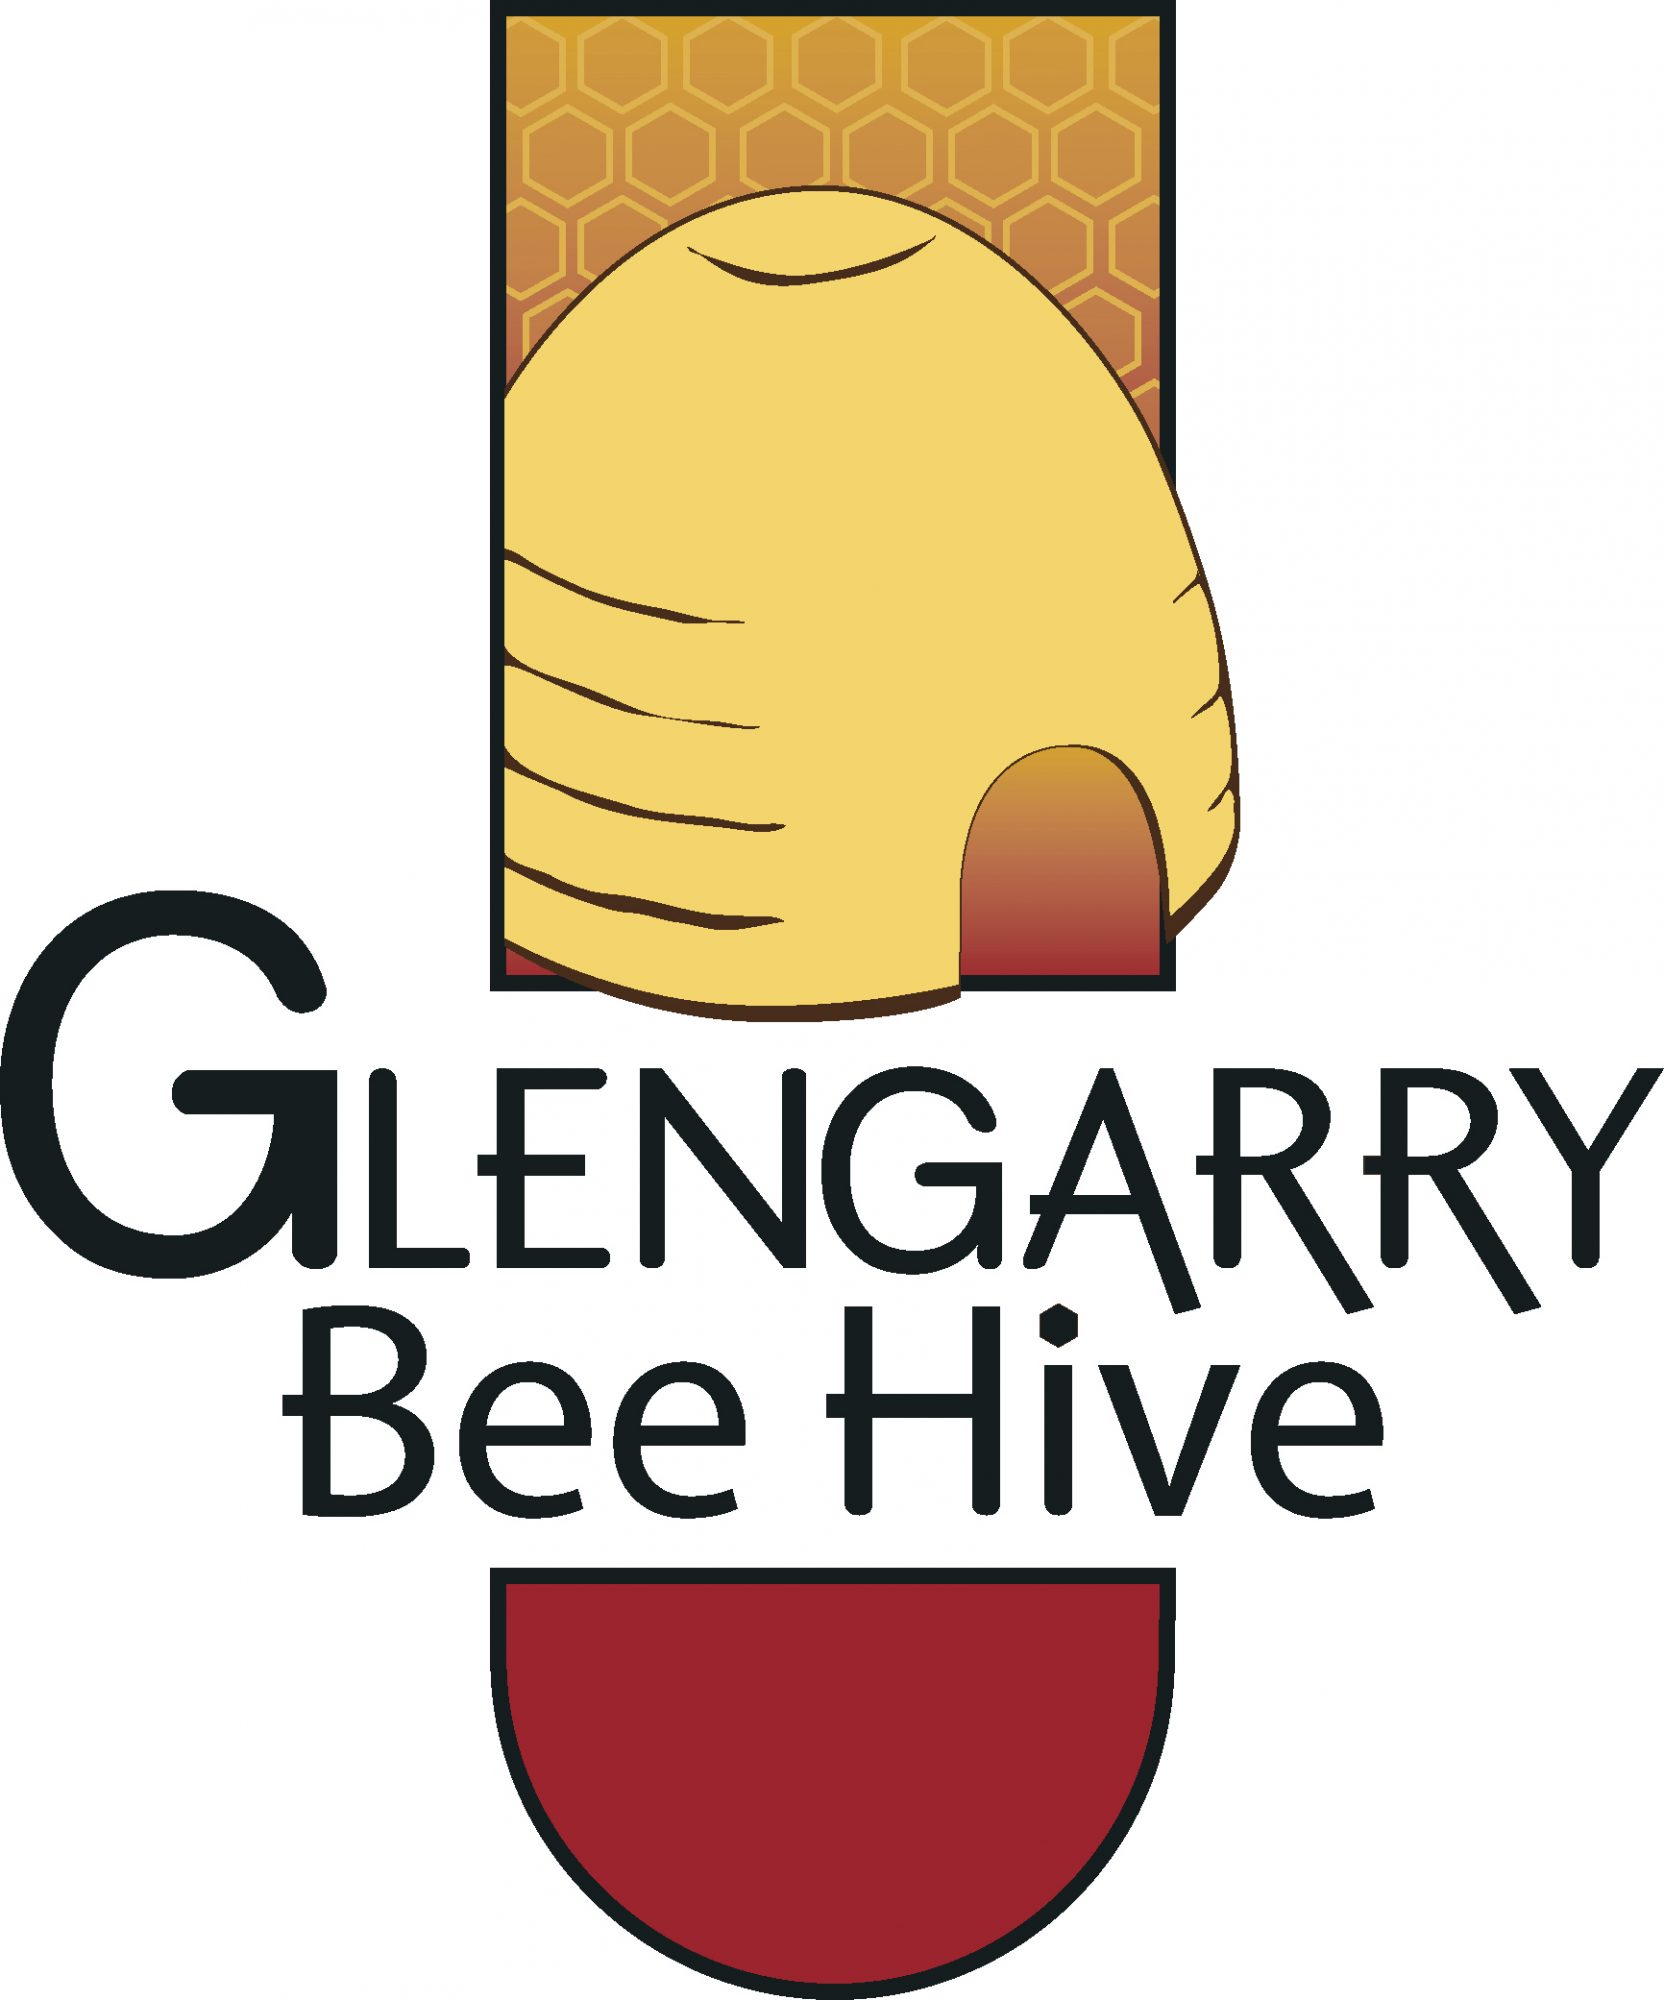 Logo design by Jeff Poissant, RGD of Evolving Media & Design Inc. for Glengarry Bee Hive, a brand of Levac Aperies, in Eastern Ontario.